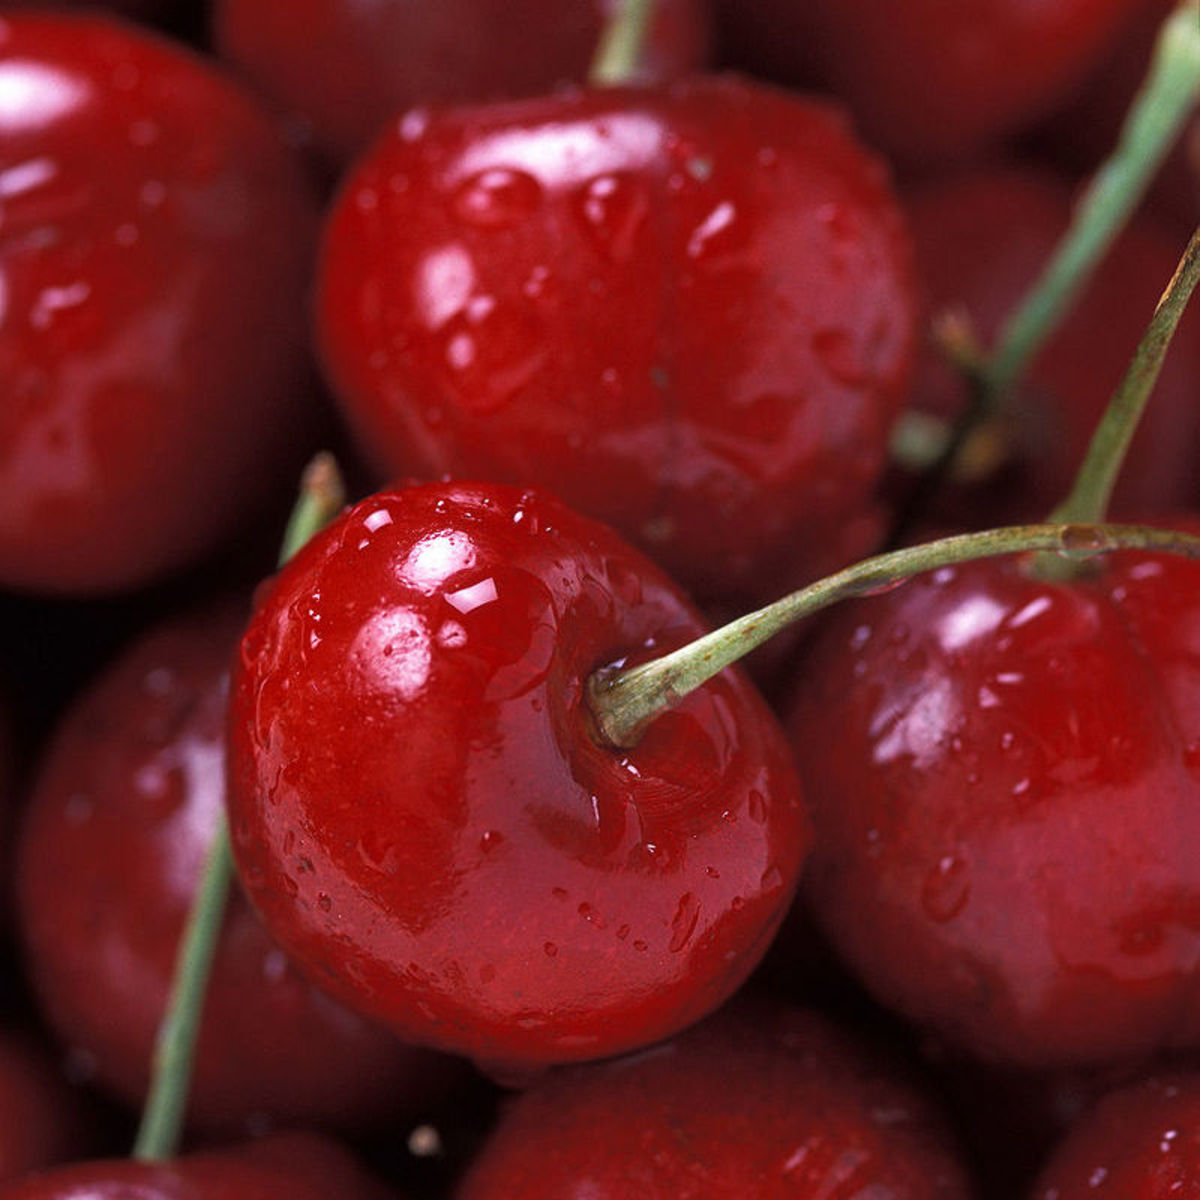 Washington's Cherry Tree Snack